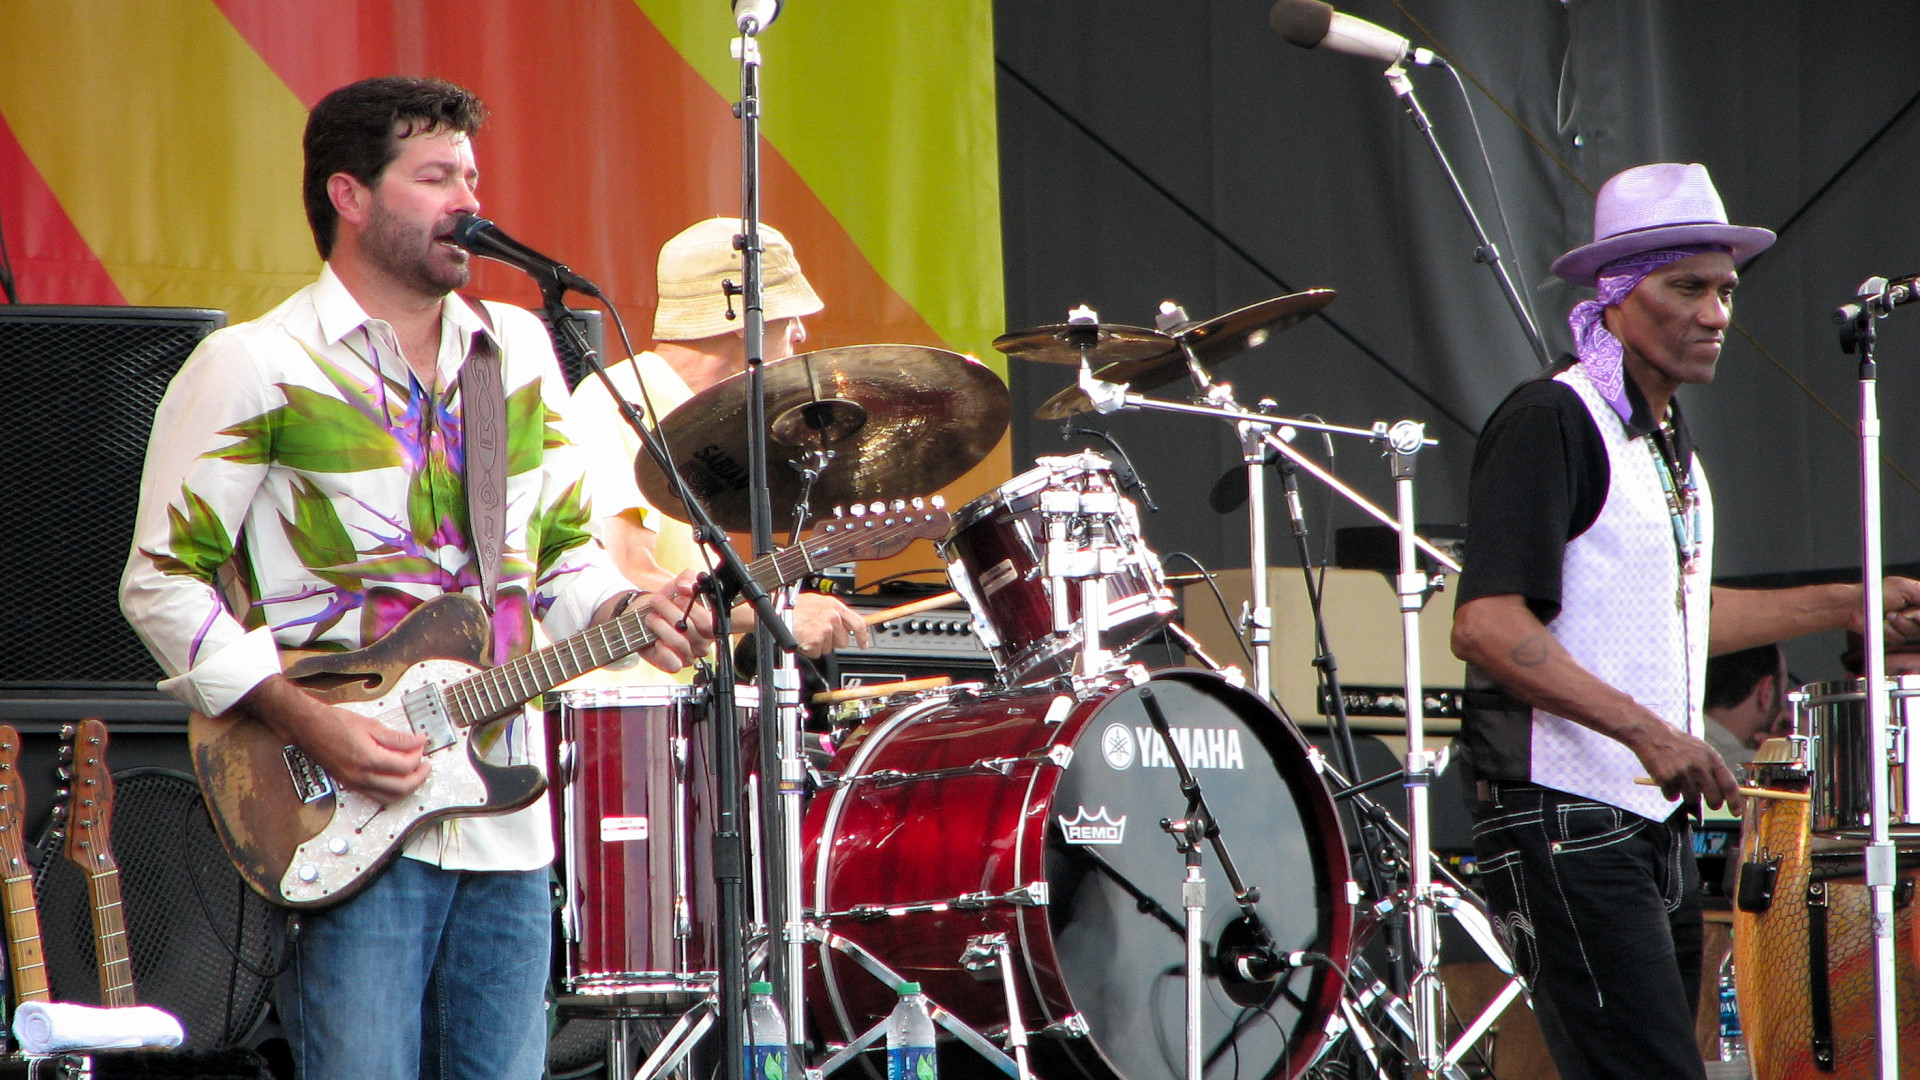 Tab Benoit on guitar, Johnny Vidacovich on drums, and Cyrille Neville, percussion and vocals